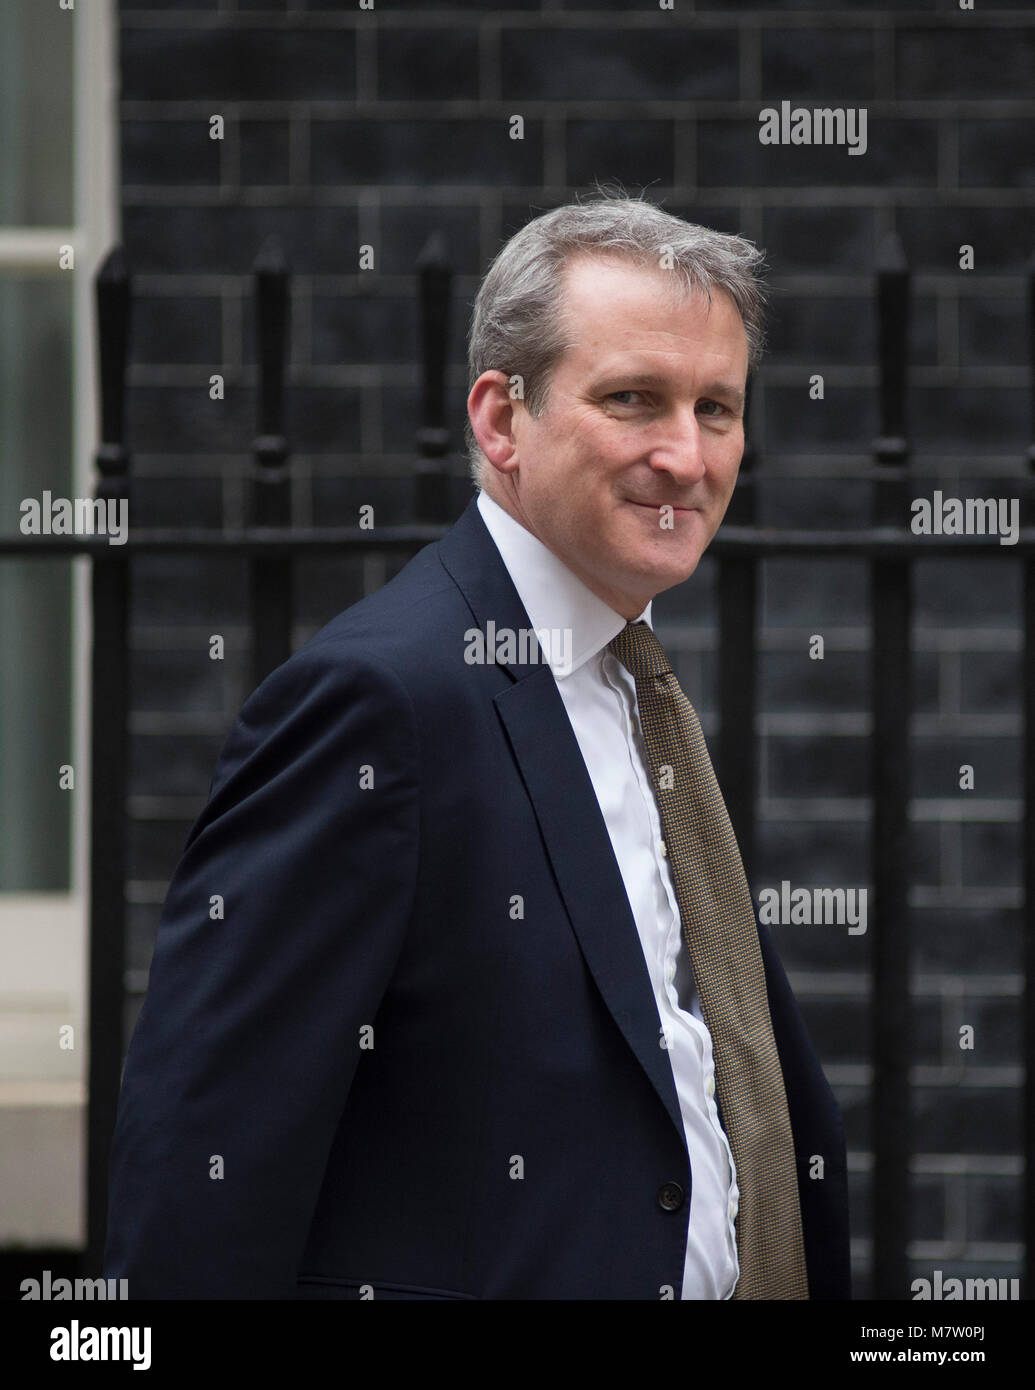 Downing Street, London, UK. 13 March 2018. Damian Hinds, Secretary of State for Education, arrives in Downing Street - Stock Image